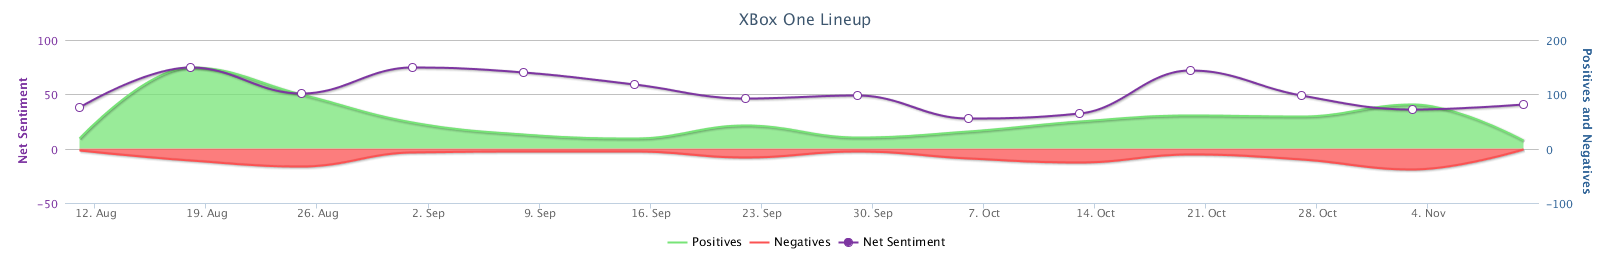 Timeline_XBox One Lineup.png